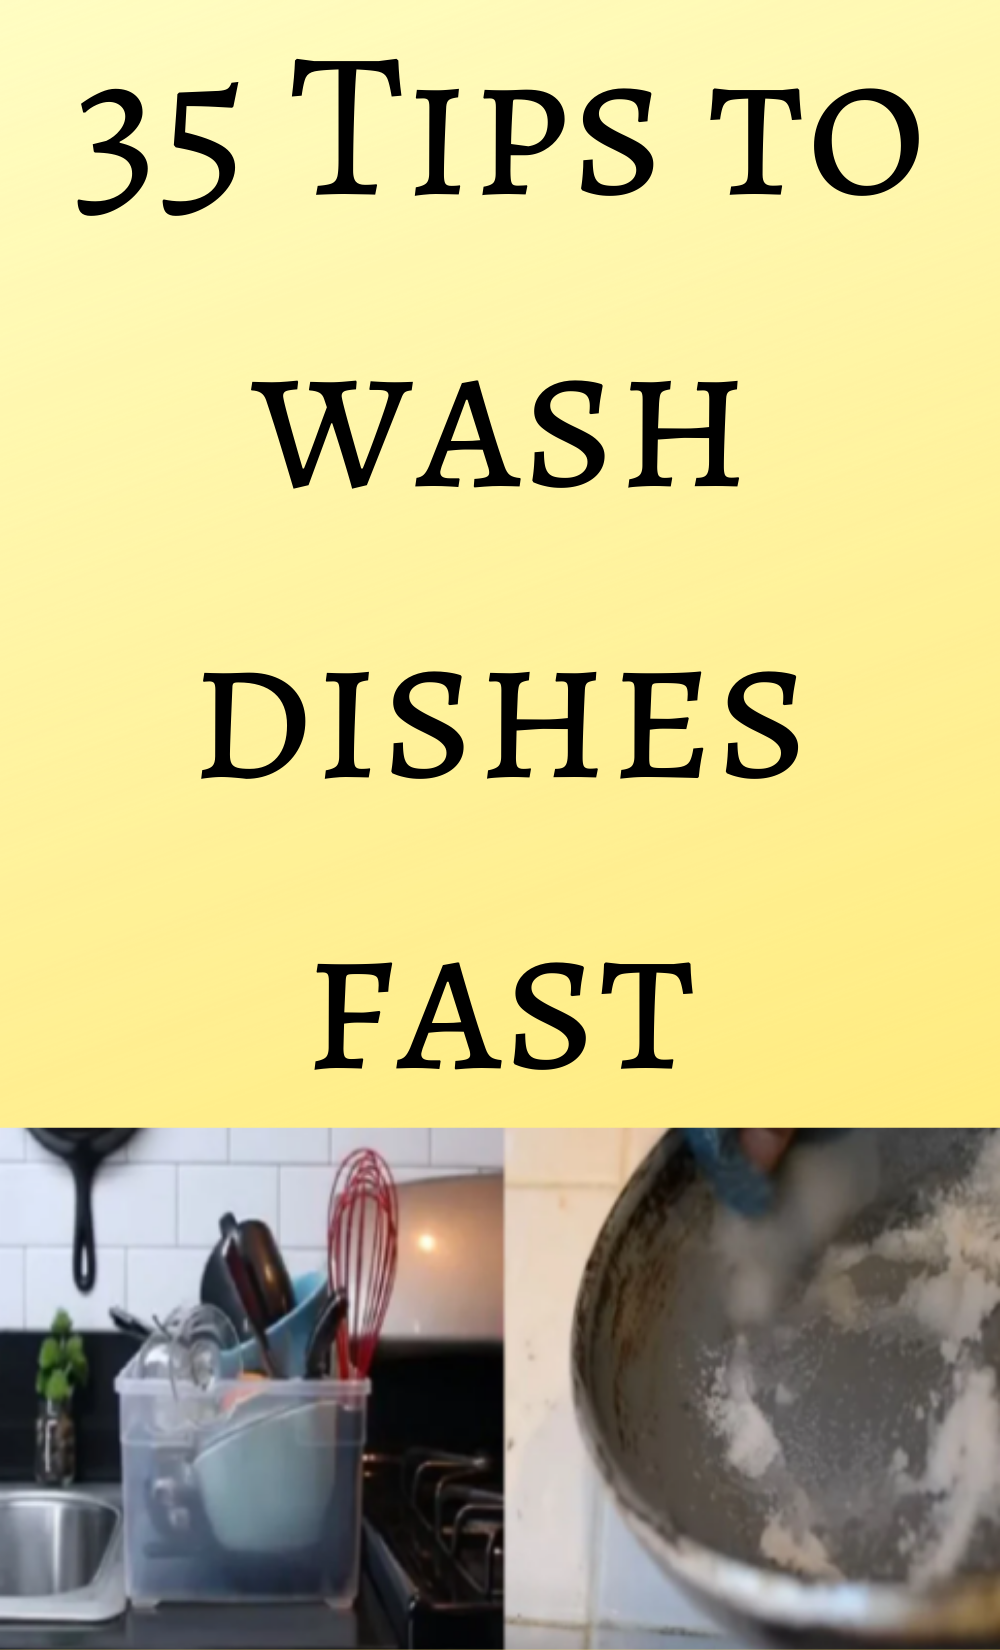 35 Tips to wash dishes fast